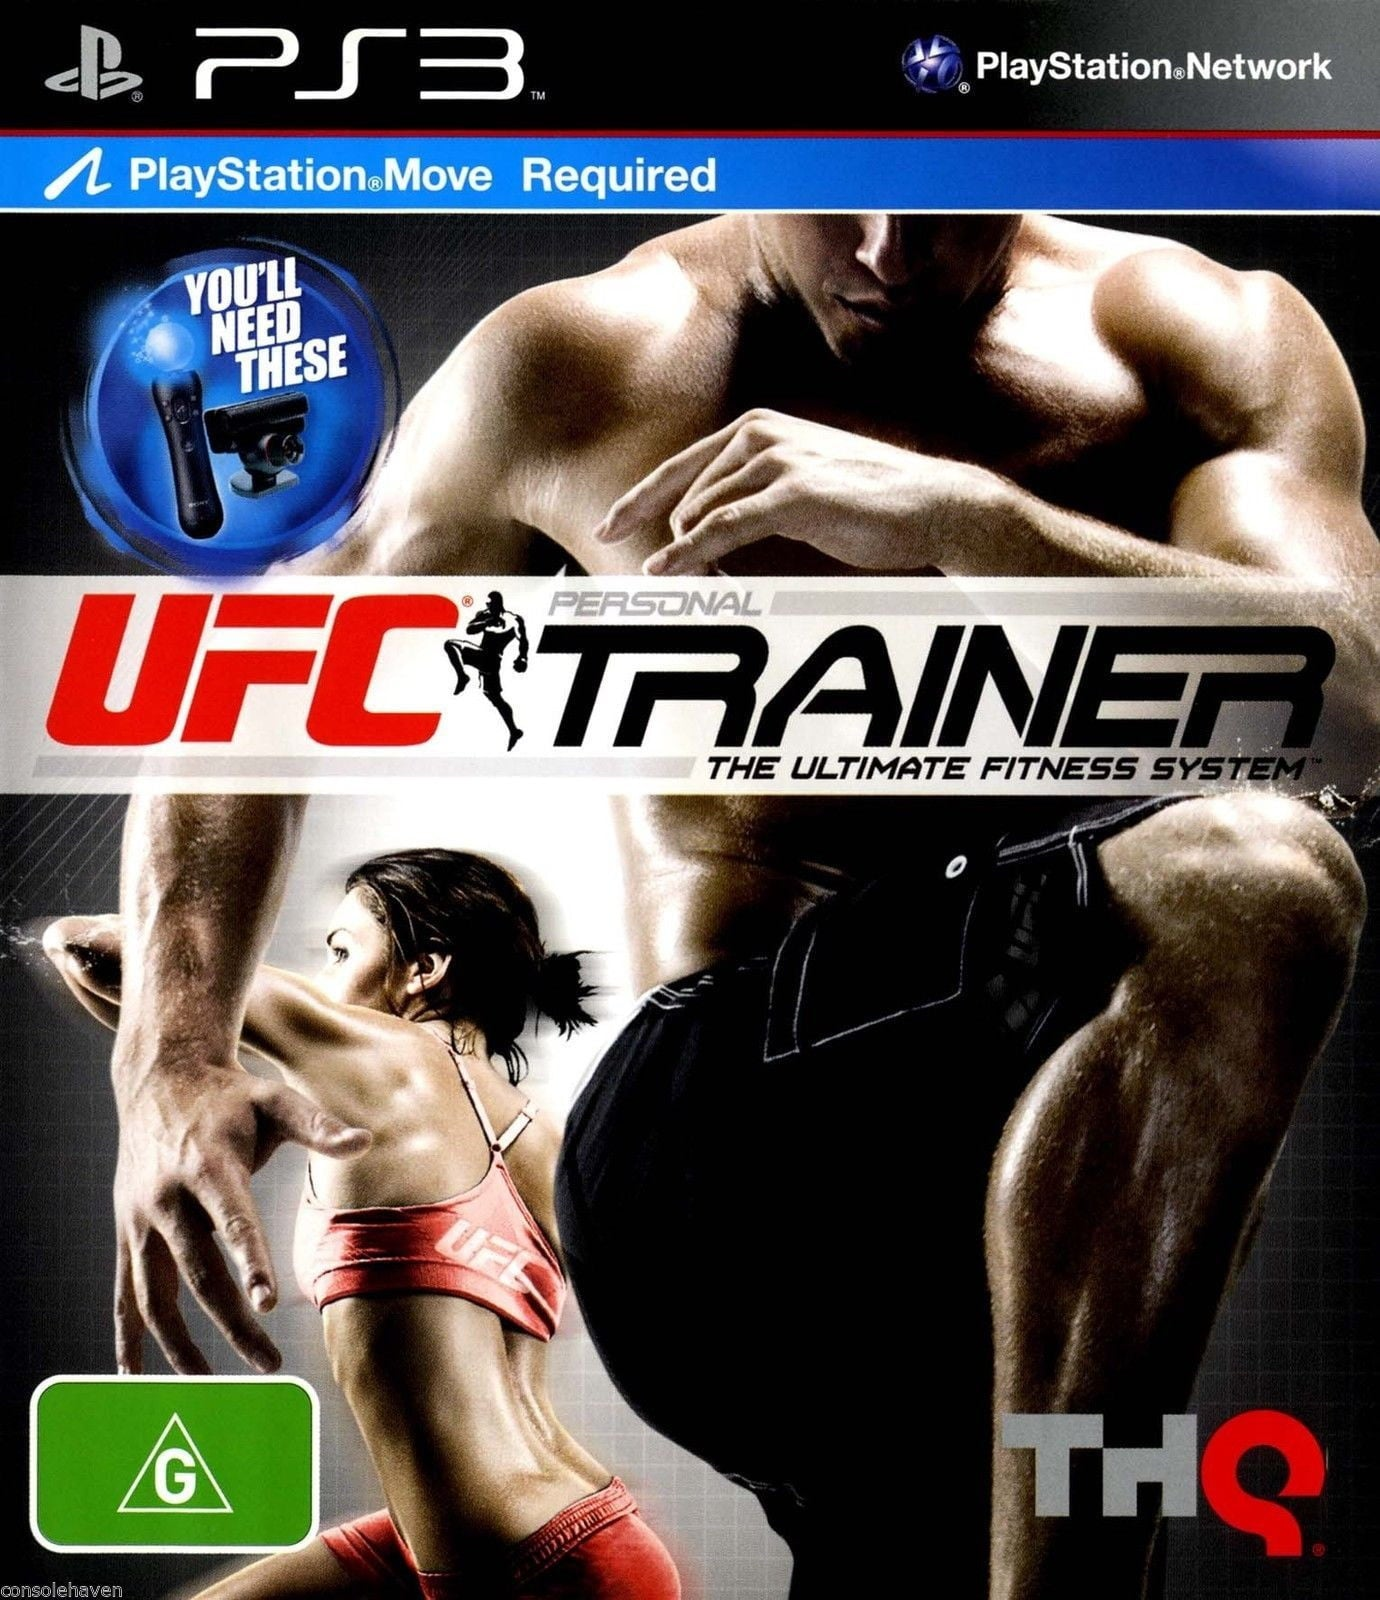 UFC Personal trainer includes leg strap PS3 Game - Shamy Stores